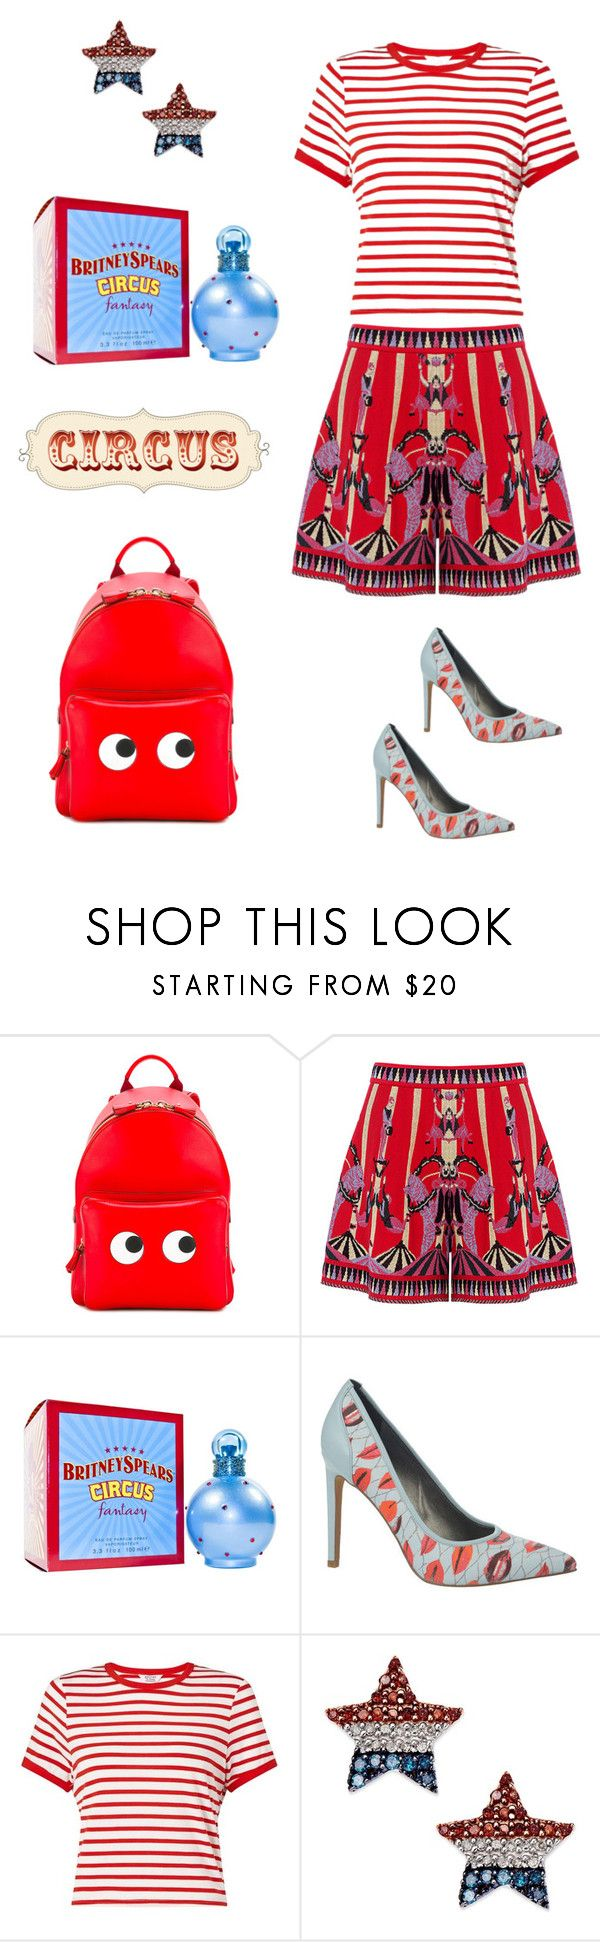 """""""Circus inspired🎪"""" by valelondon ❤ liked on Polyvore featuring Anya Hindmarch, M Missoni, Britney Spears, Circus by Sam Edelman and Miss Selfridge"""